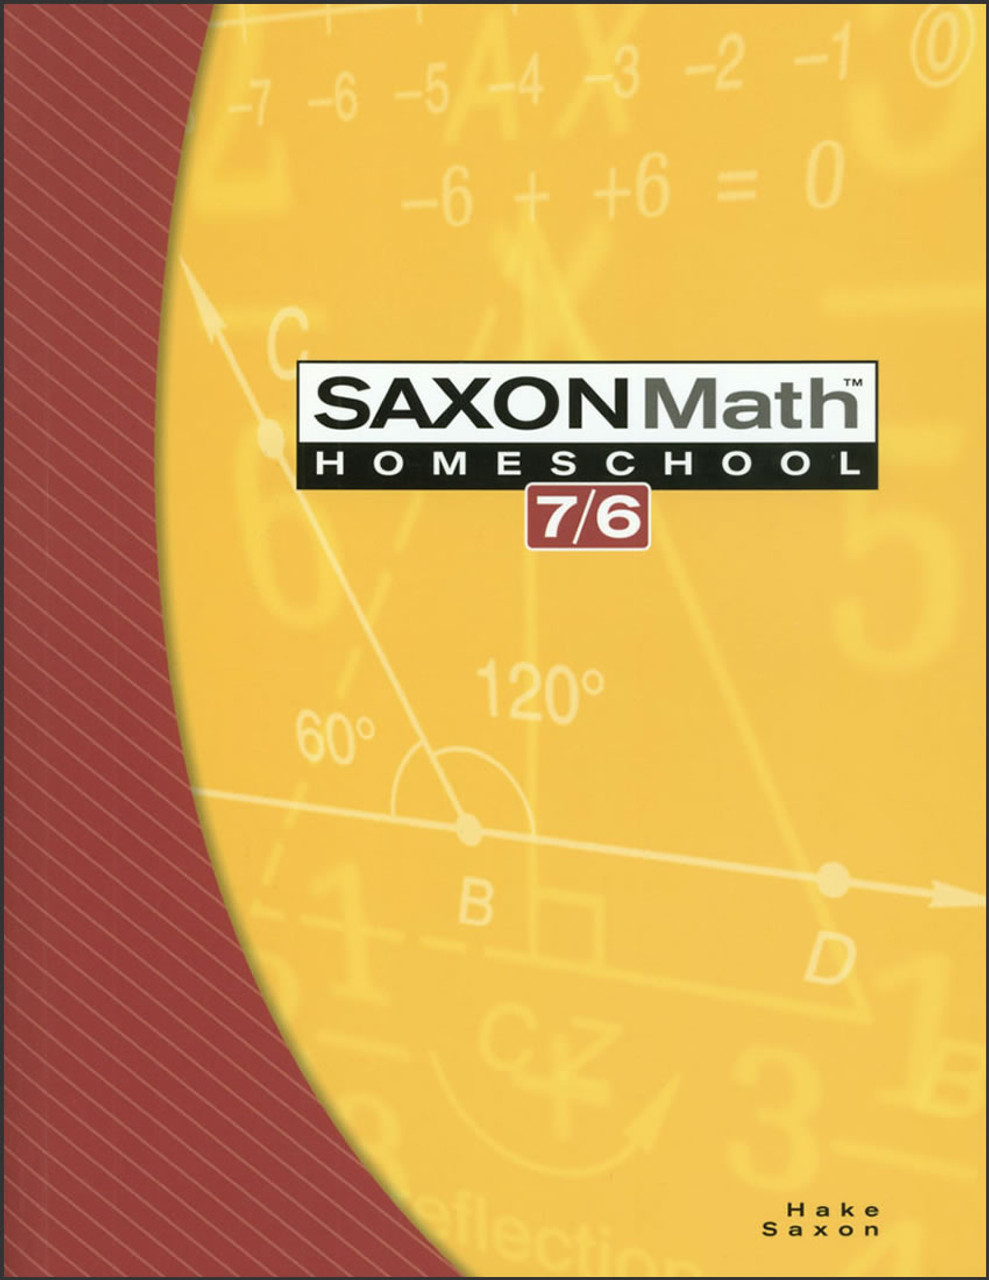 Saxon Math Homeschool 7/6, 4th edition